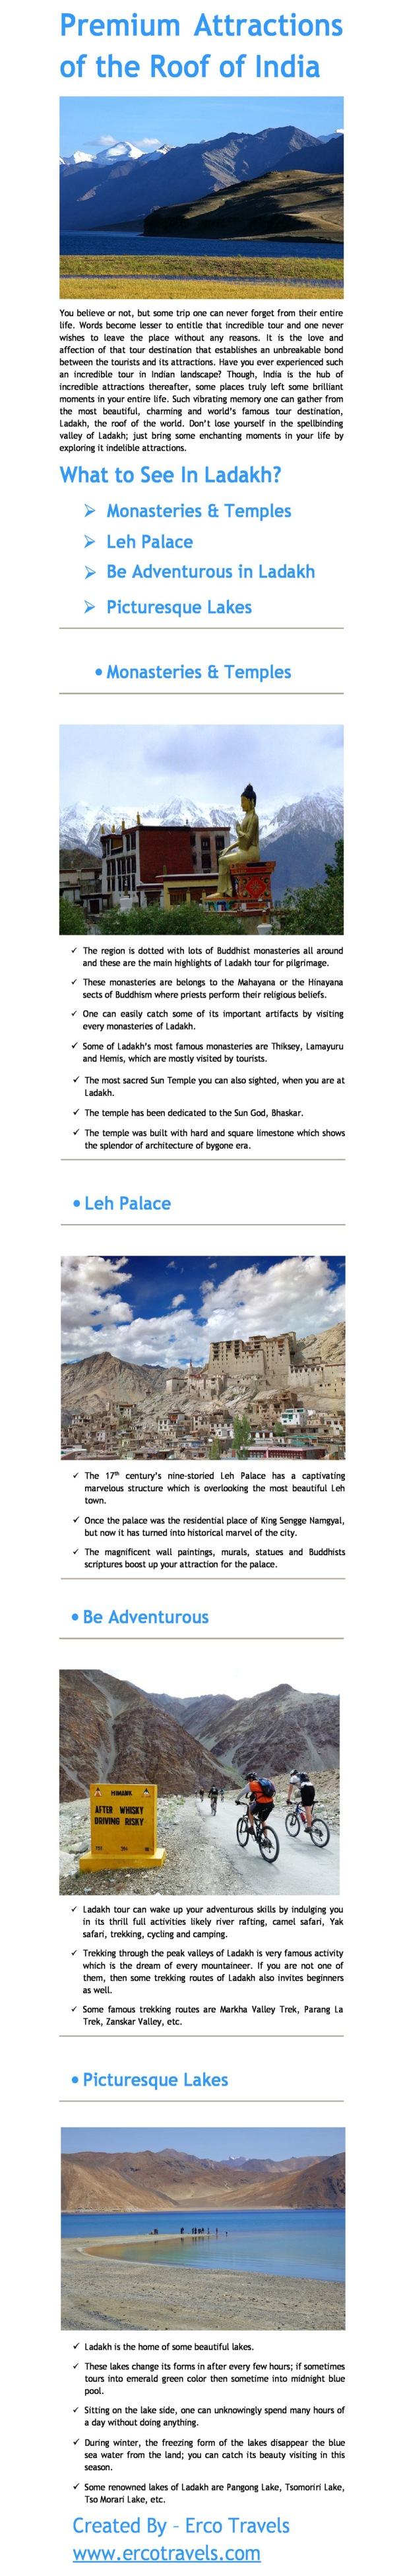 Ladakh Attractions Roof of India